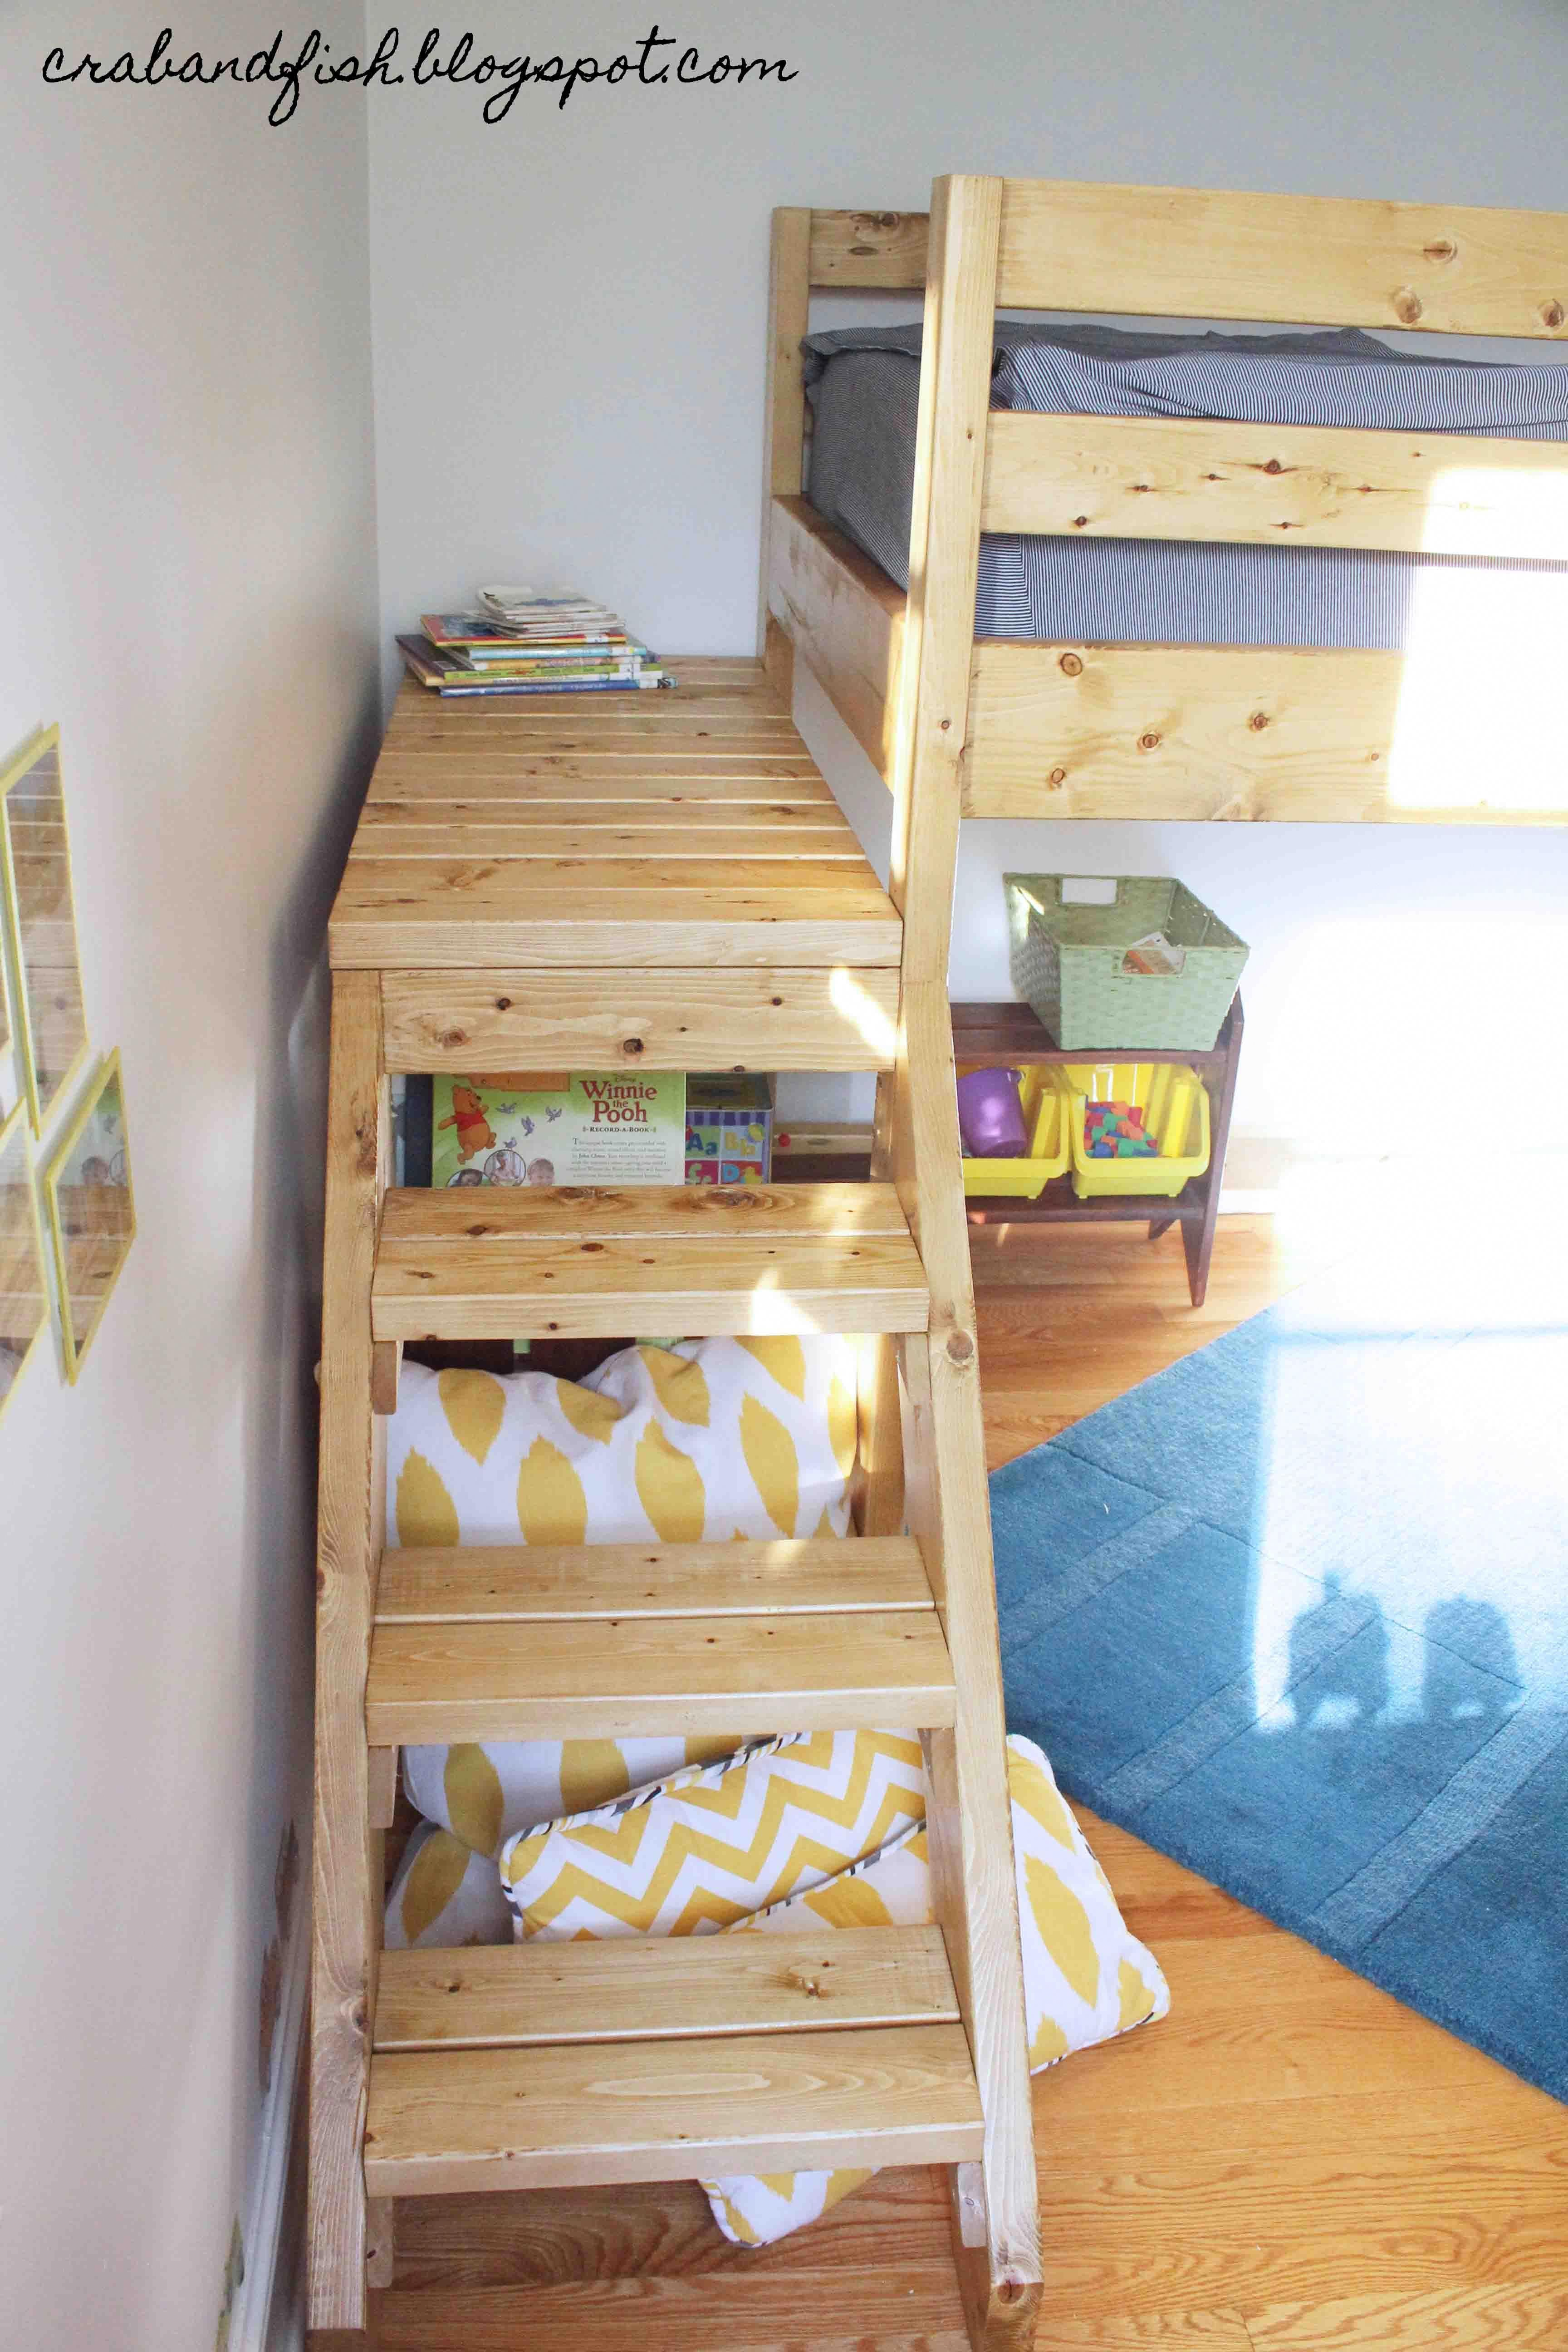 Ana White Loft Bed Boy Toddler Loft Bed Do It Yourself Home Projects From Ana White Bunkbedsforkids Toddler Loft Beds White Loft Bed Kid Beds